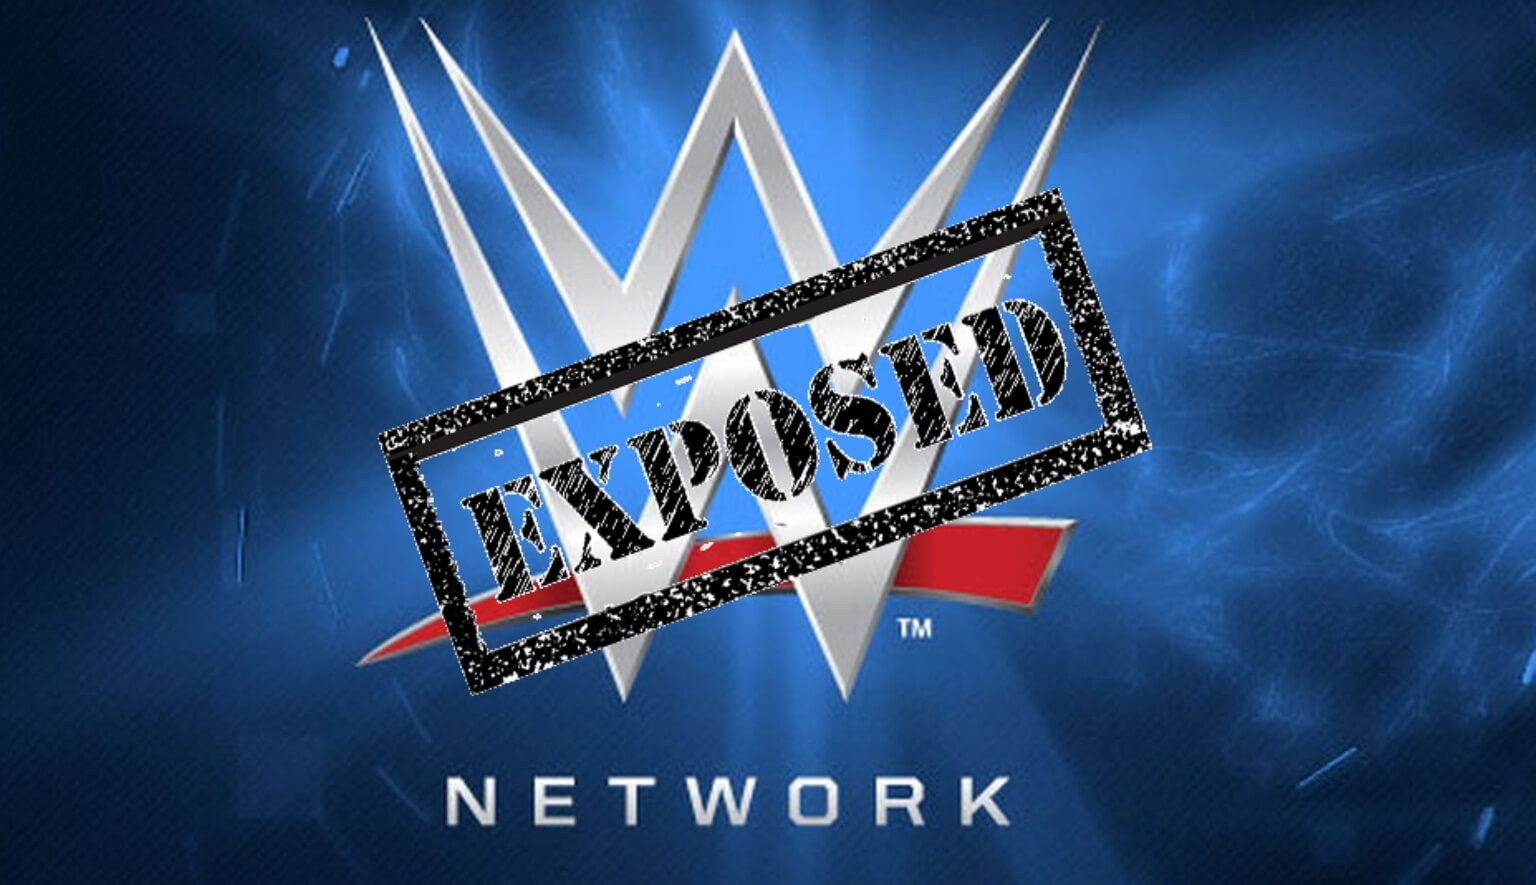 Wwe network exposed fraud